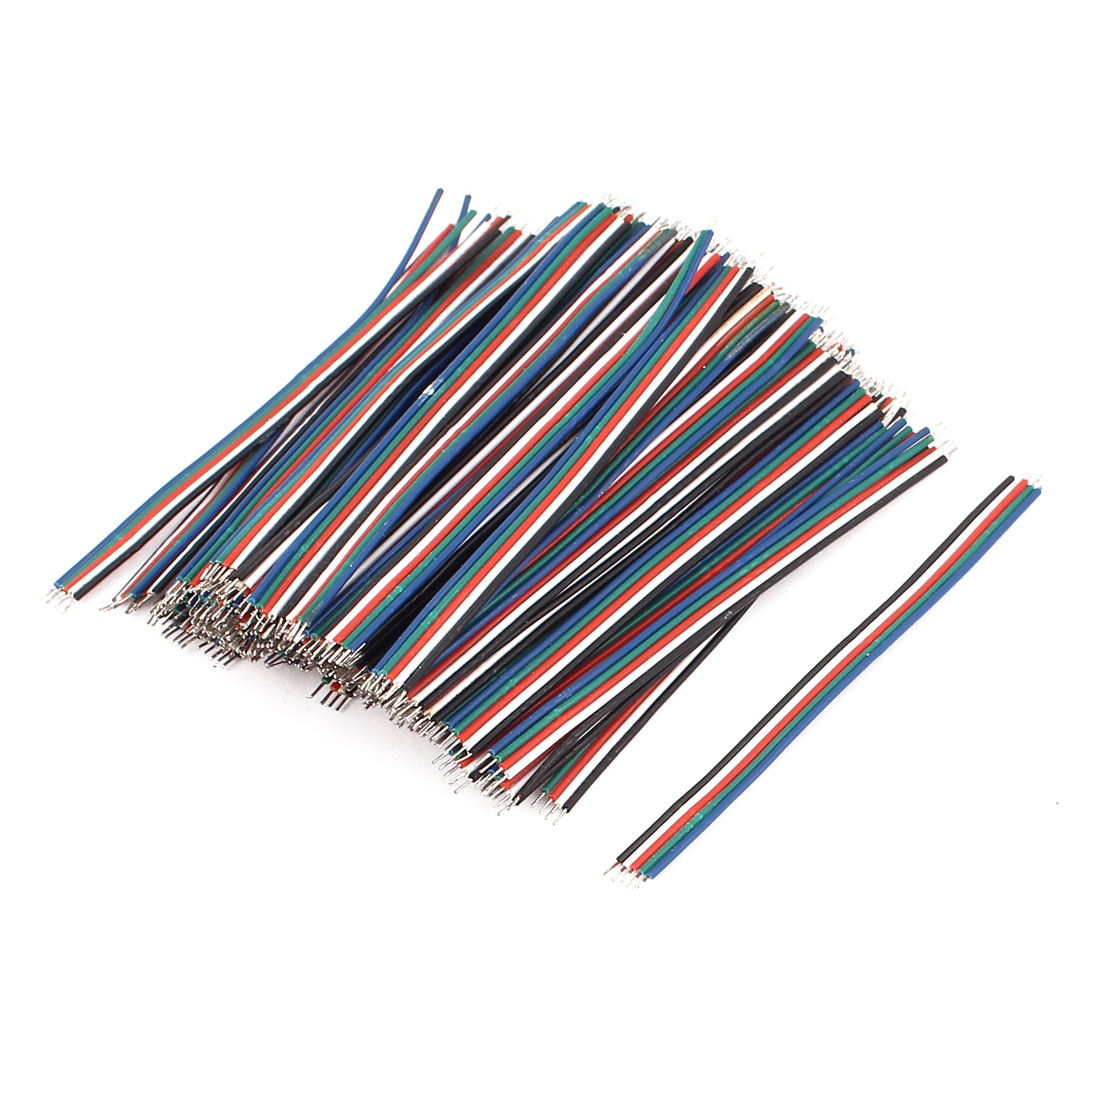 0.8mm x 65mm 5 Terminals Electric Insulated Flexible PVC Wire Cable 100Pcs